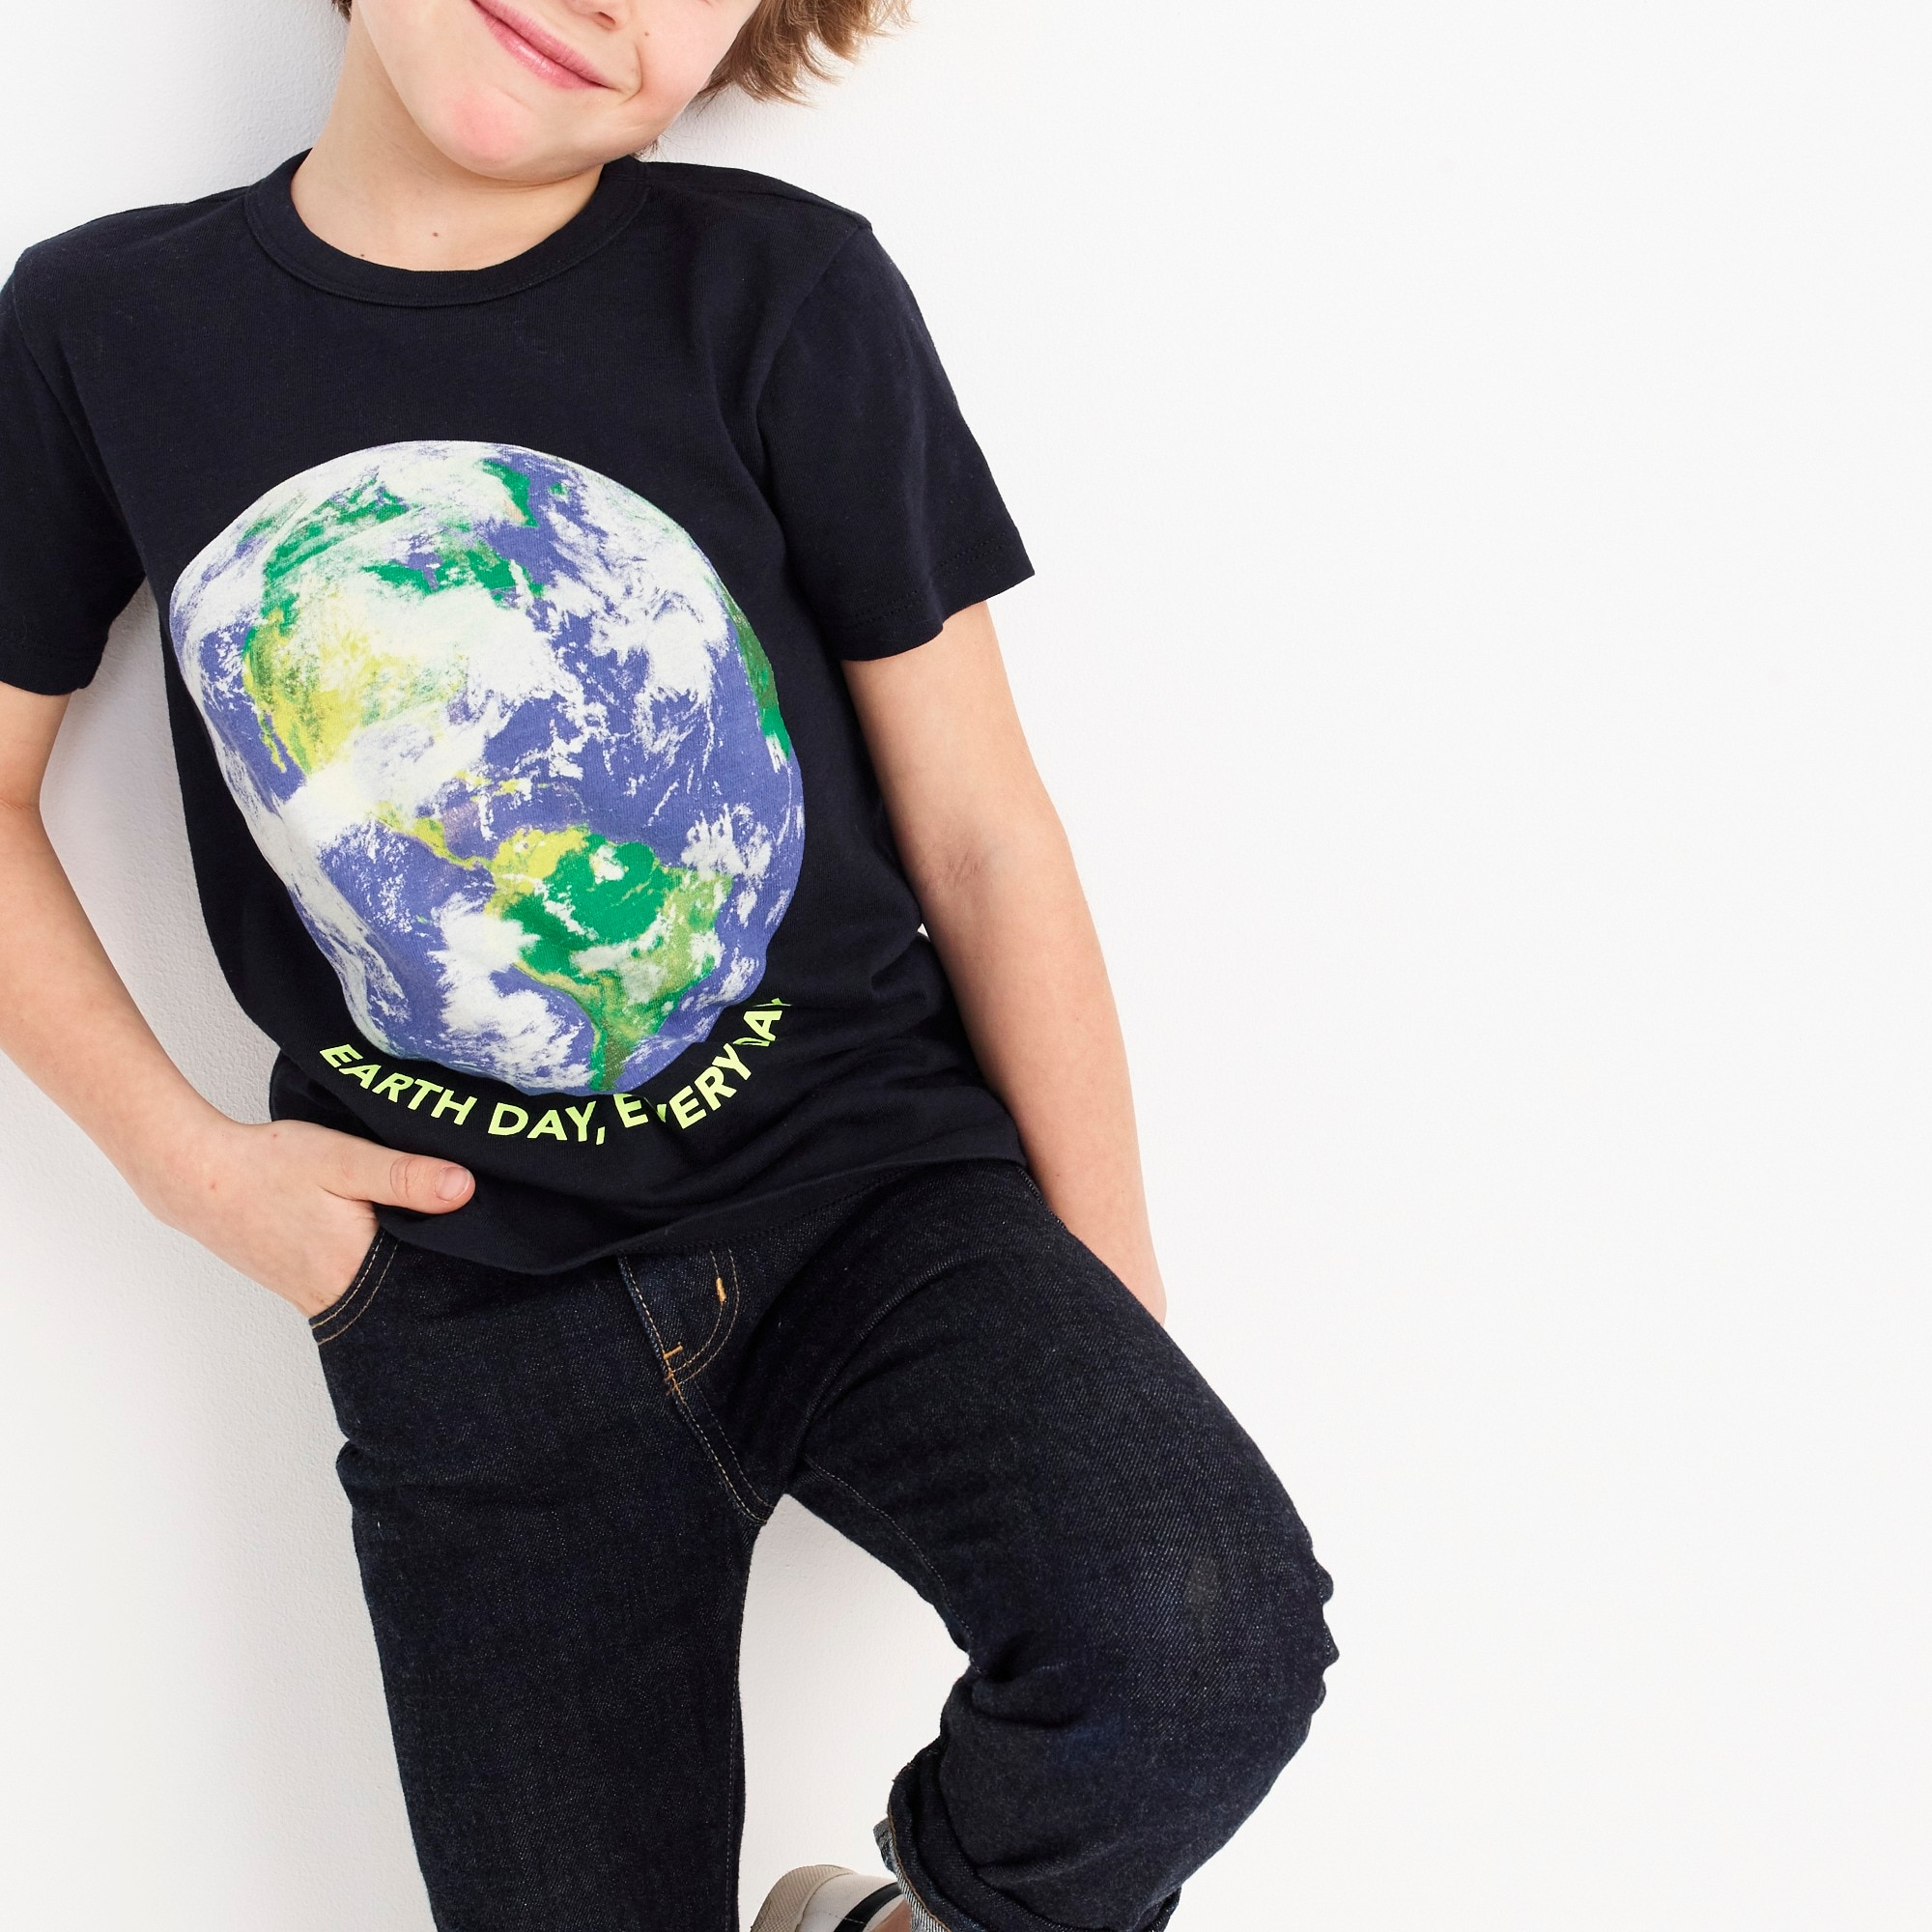 Kids' glow-in-the-dark Earth Day T-shirt boy new arrivals c